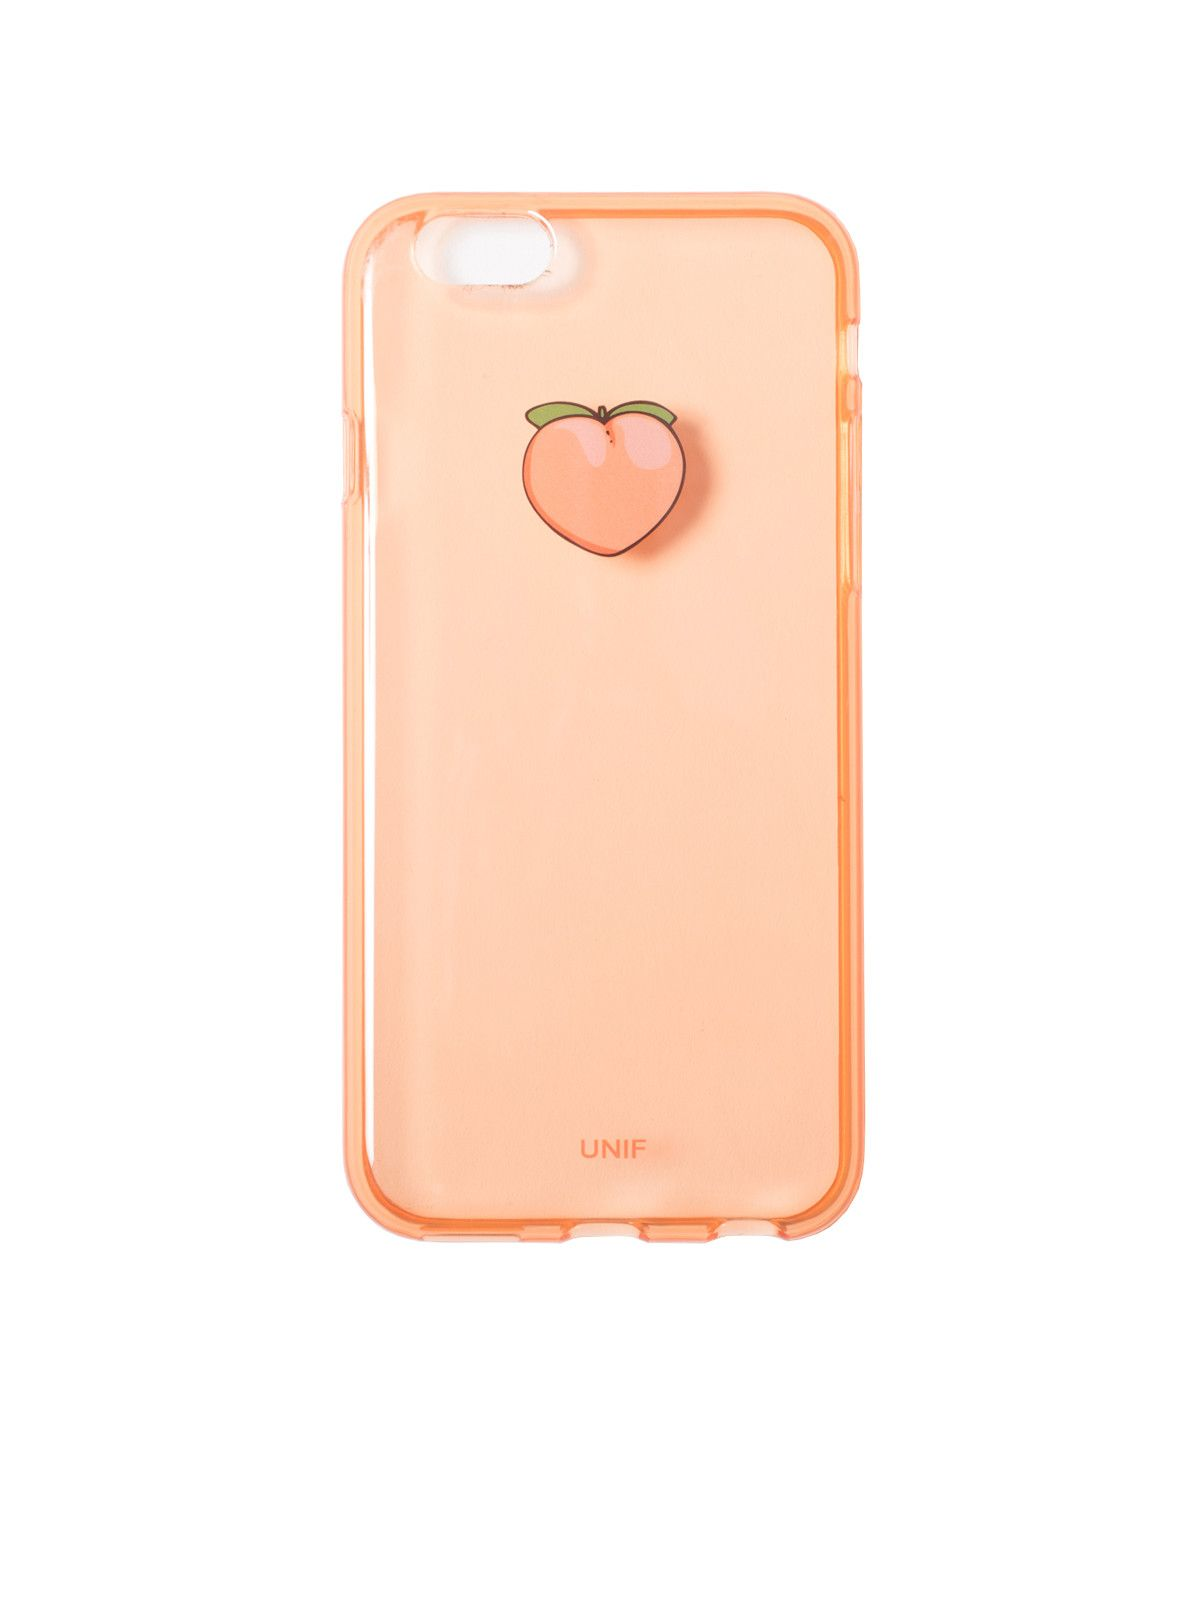 Cute Korean Wallpaper For Cell Phones Peach Case 28 00 Wants Home Aesthetic Phone Case